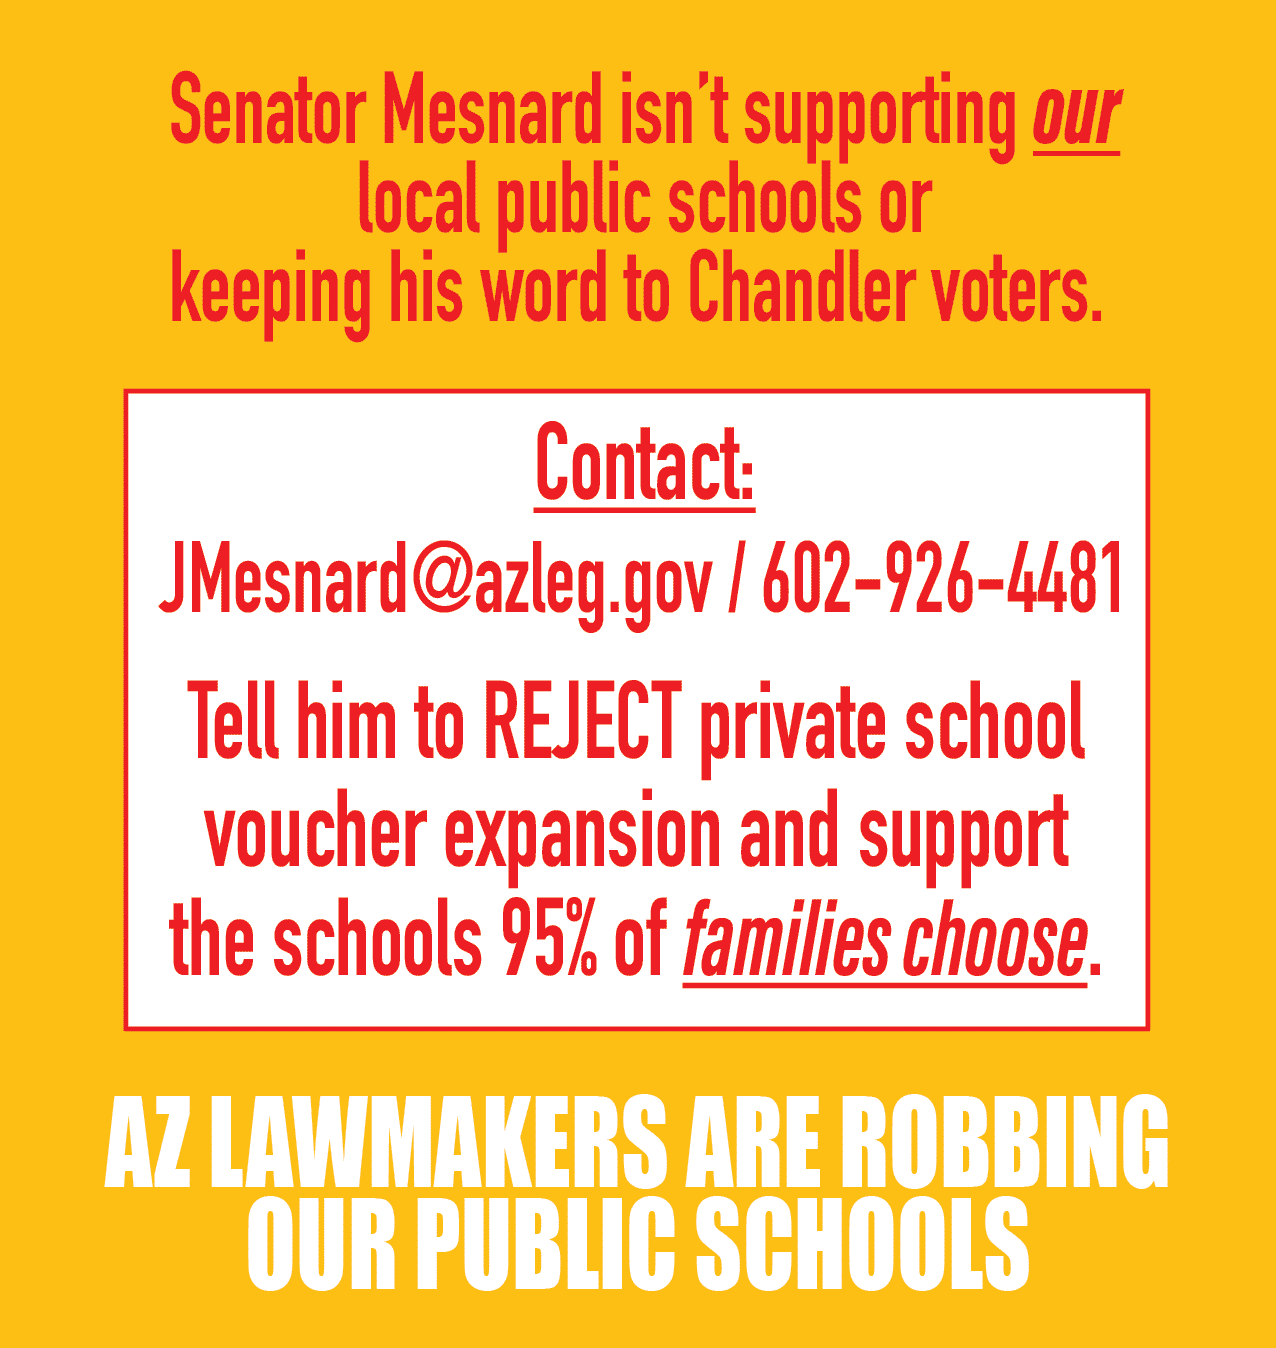 Senator Mesnard isn't supporting our local public schools or keeping his word to Chandler voters. Contact: JMesnard@azleg.gov / 602-926-4481 Tell him to REJECT private school voucher expansion and support the schools 95% of families choose. AZ LAWMAKERS ARE ROBBING OUR PUBLIC SCHOOLS